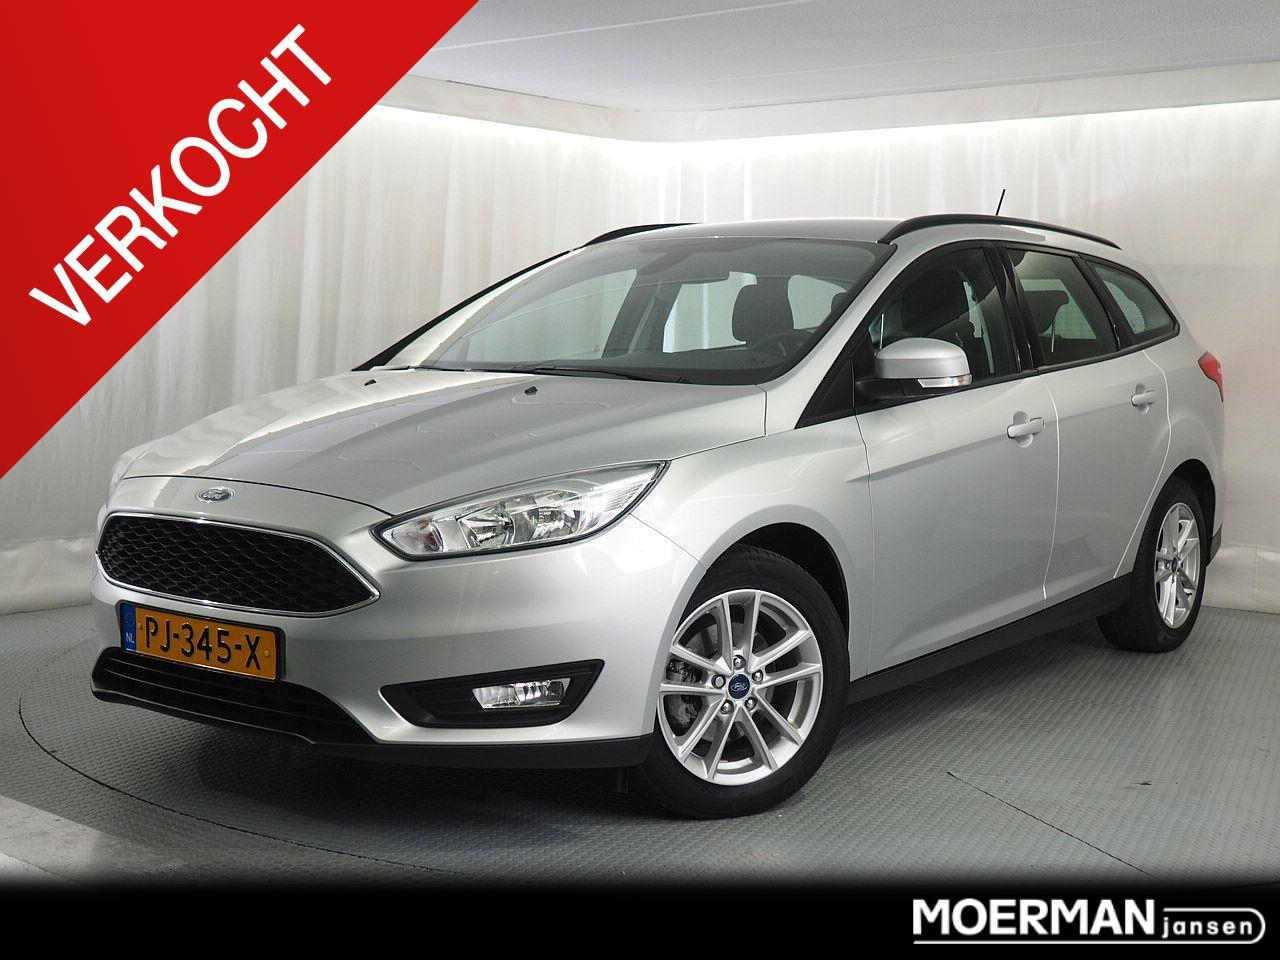 Ford Focus Wagon 1.0 edition verkocht